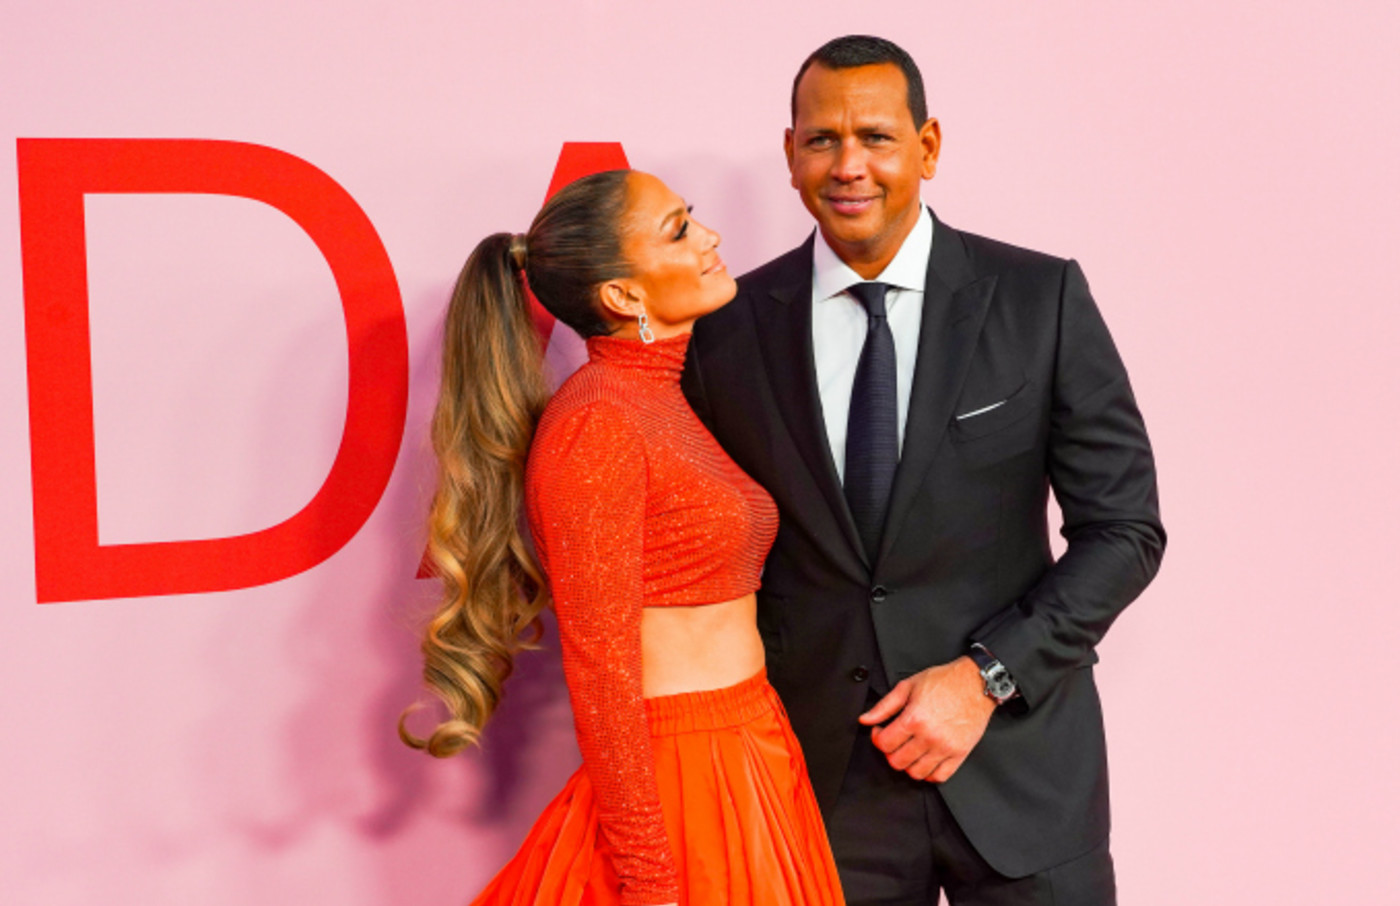 ennifer Lopez and Alex Rodriguez attend the 2019 CFDA Fashion Awards